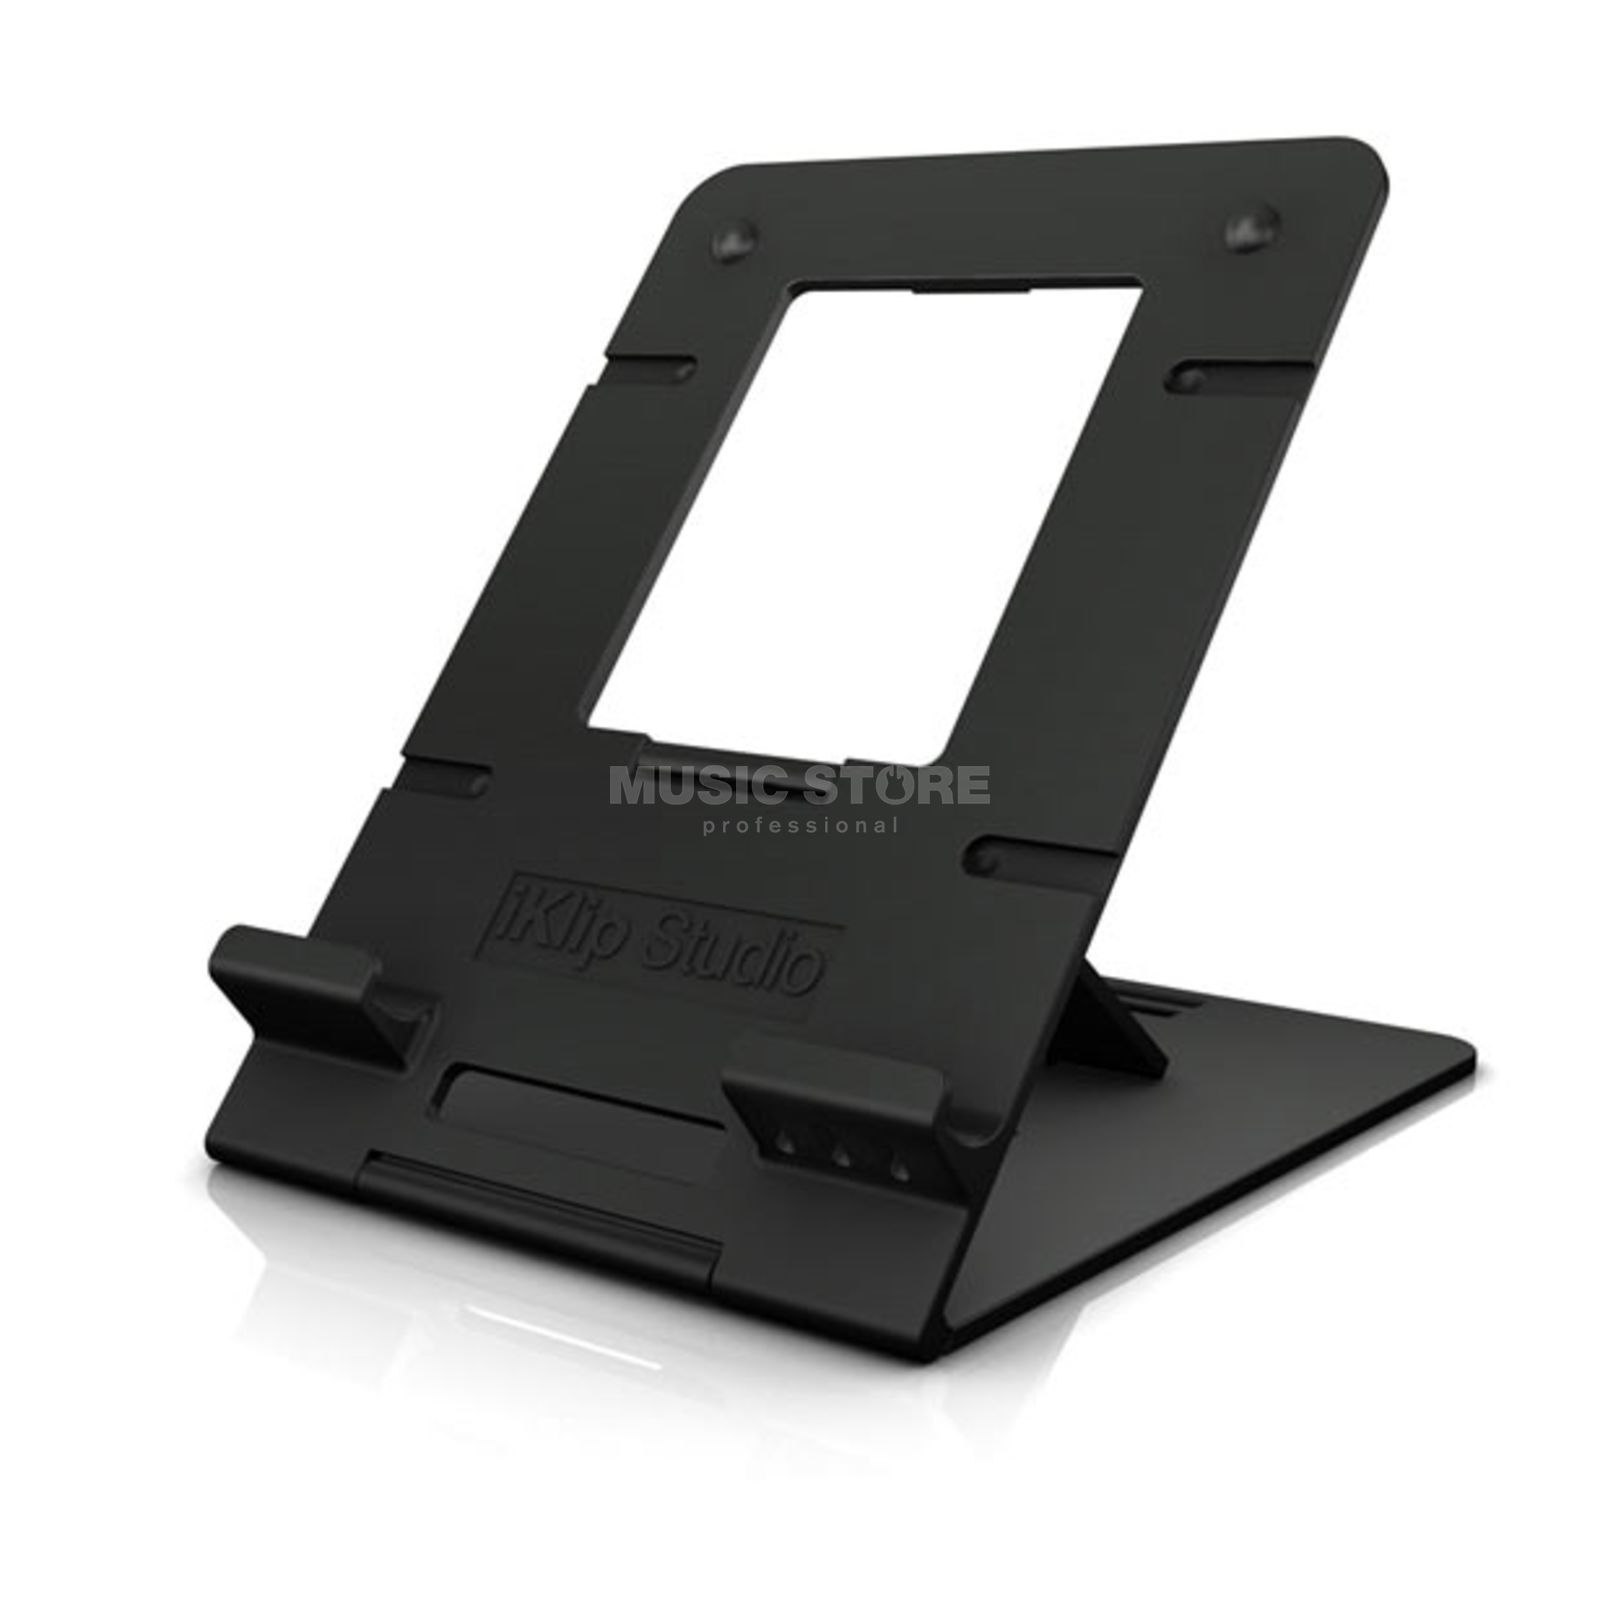 IK Multimedia iKlip Studio for iPad Desktop Stand for iPad Produktbild